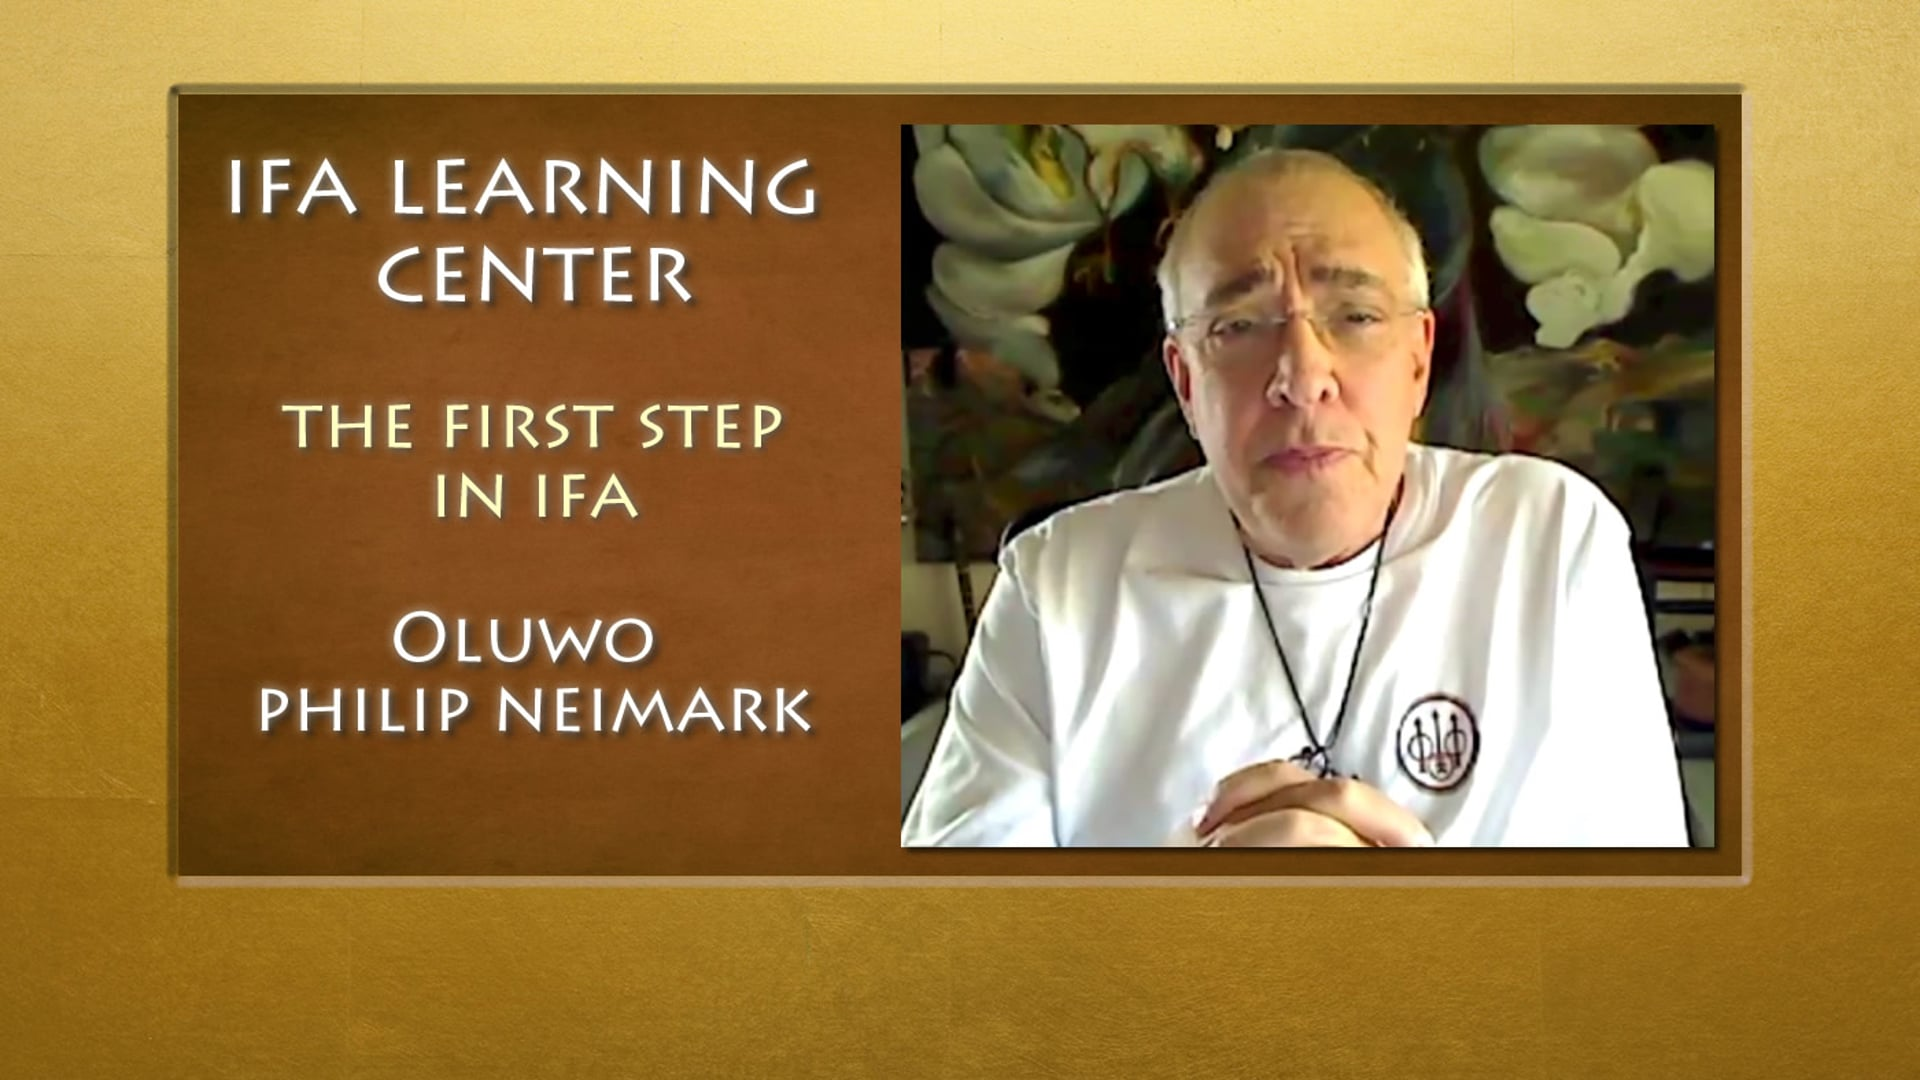 The 1st Step in Ifa